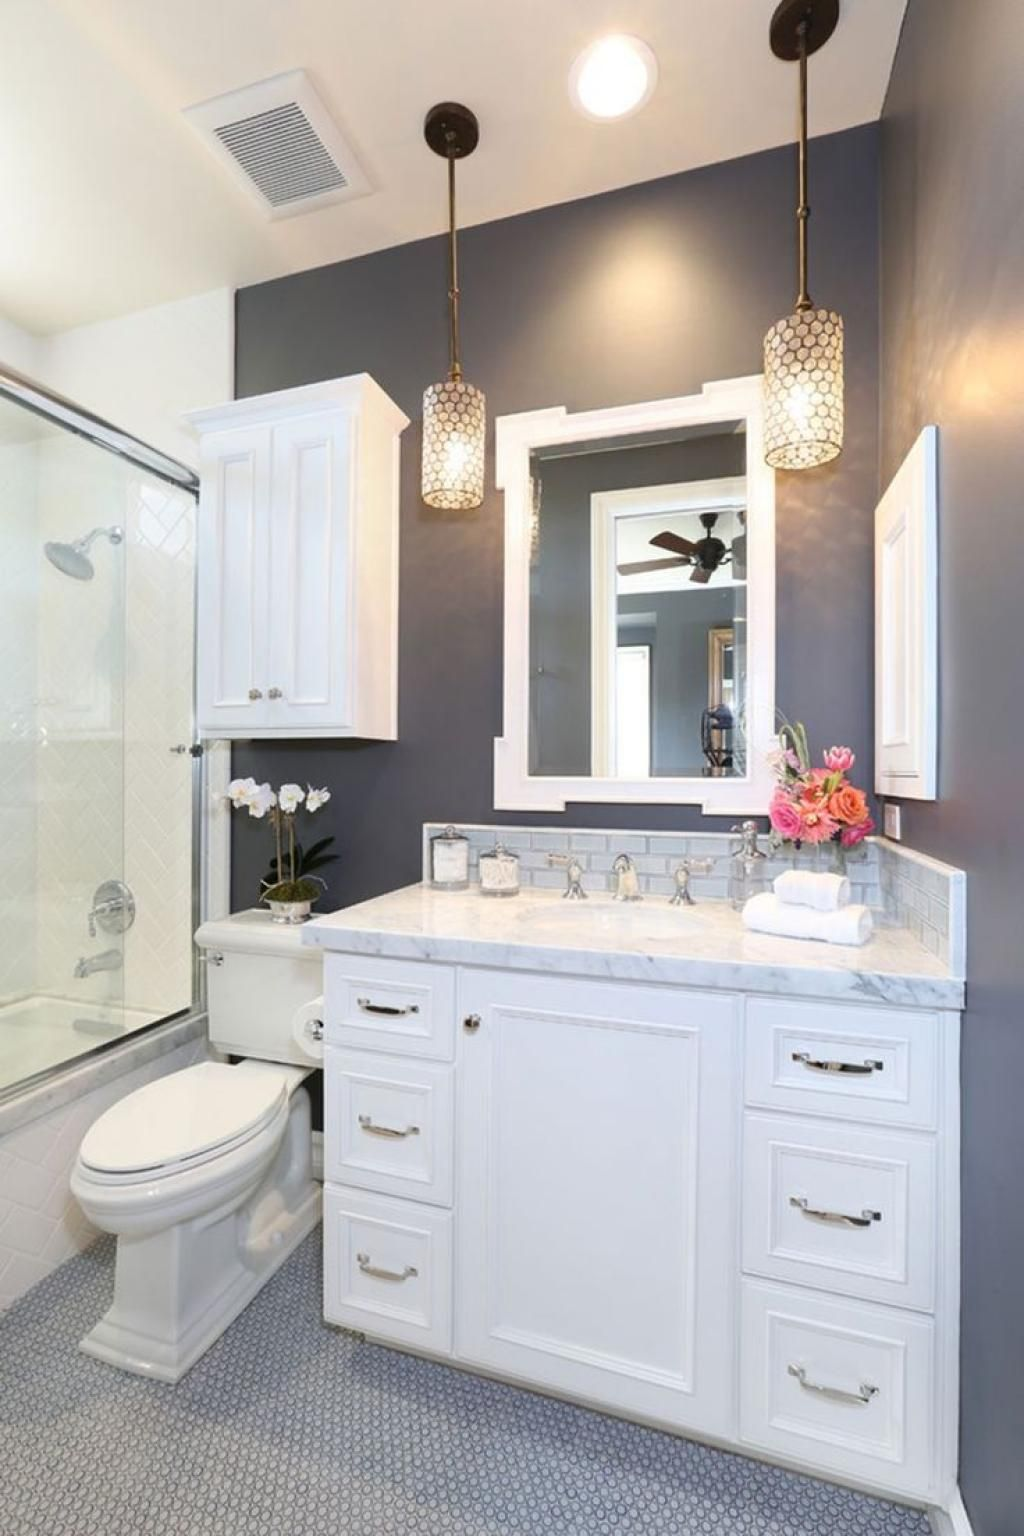 3 Easy Steps To Remodelling Your Small Bathroom Small Bathroom Remodel Bathroom Remodel Master Beautiful Small Bathrooms